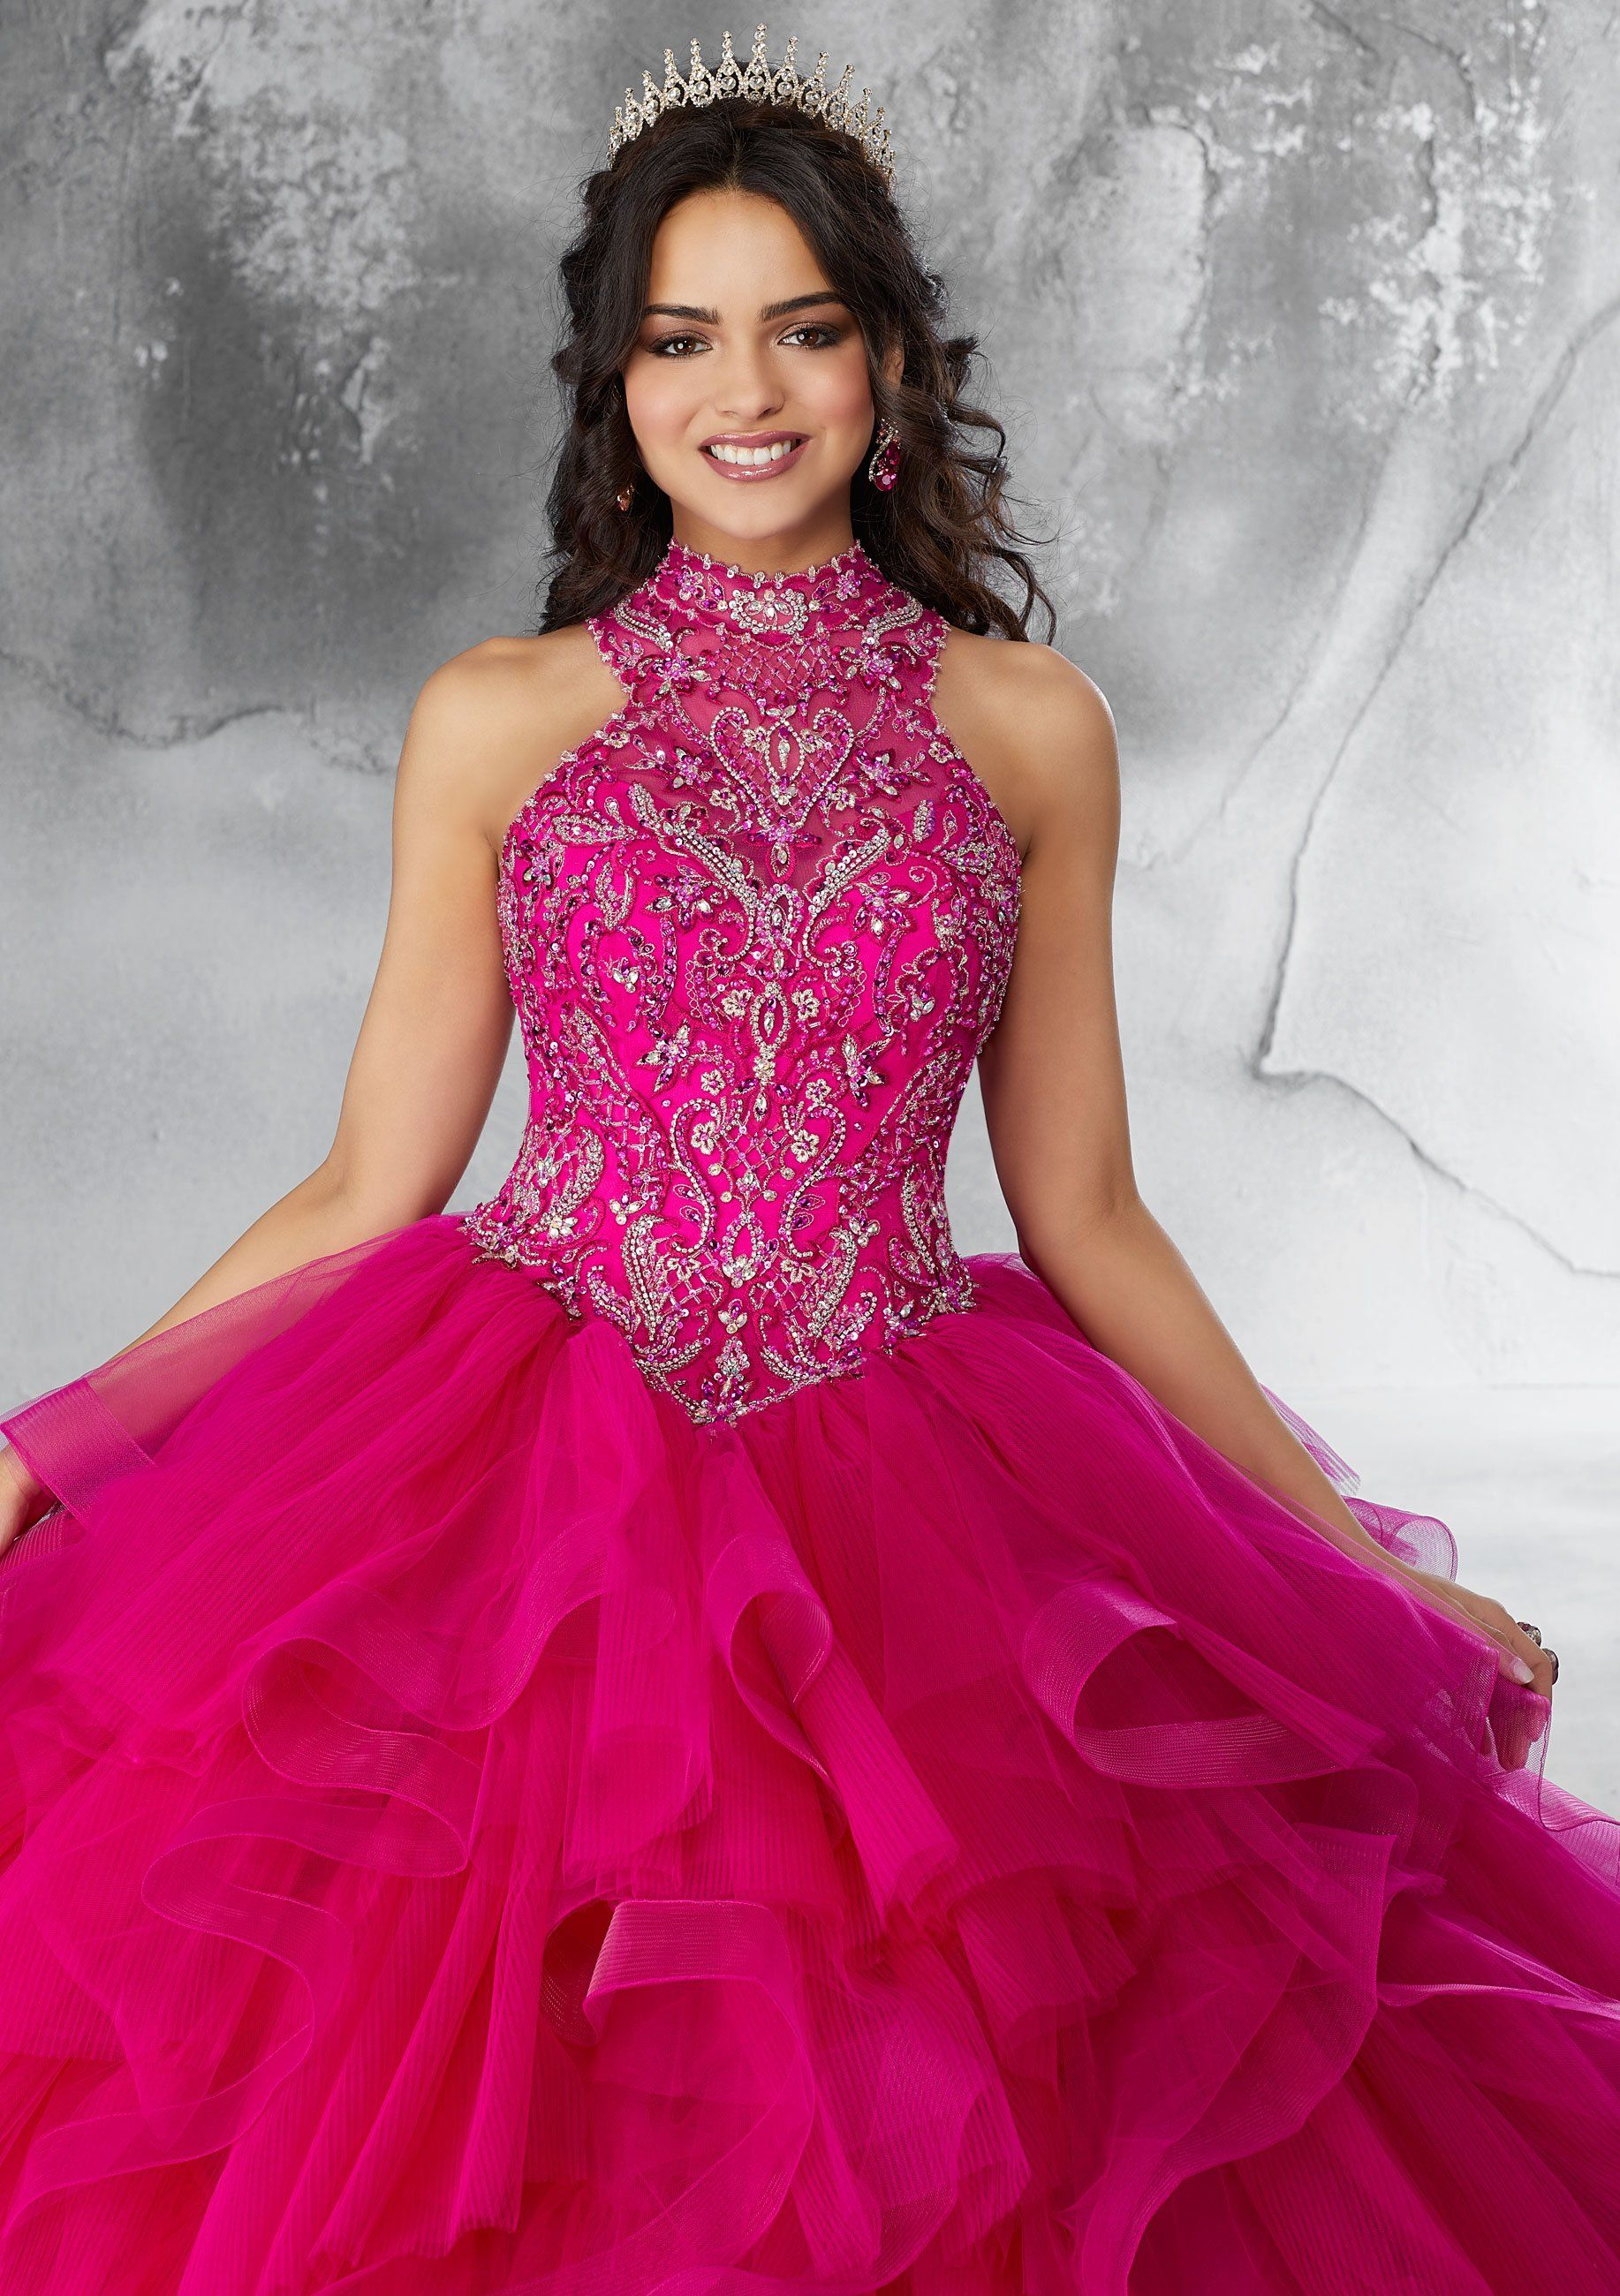 c8d0114d0e Ruffled Halter Quinceanera Dress by Mori Lee Vizcaya 89187 in 2019 ...